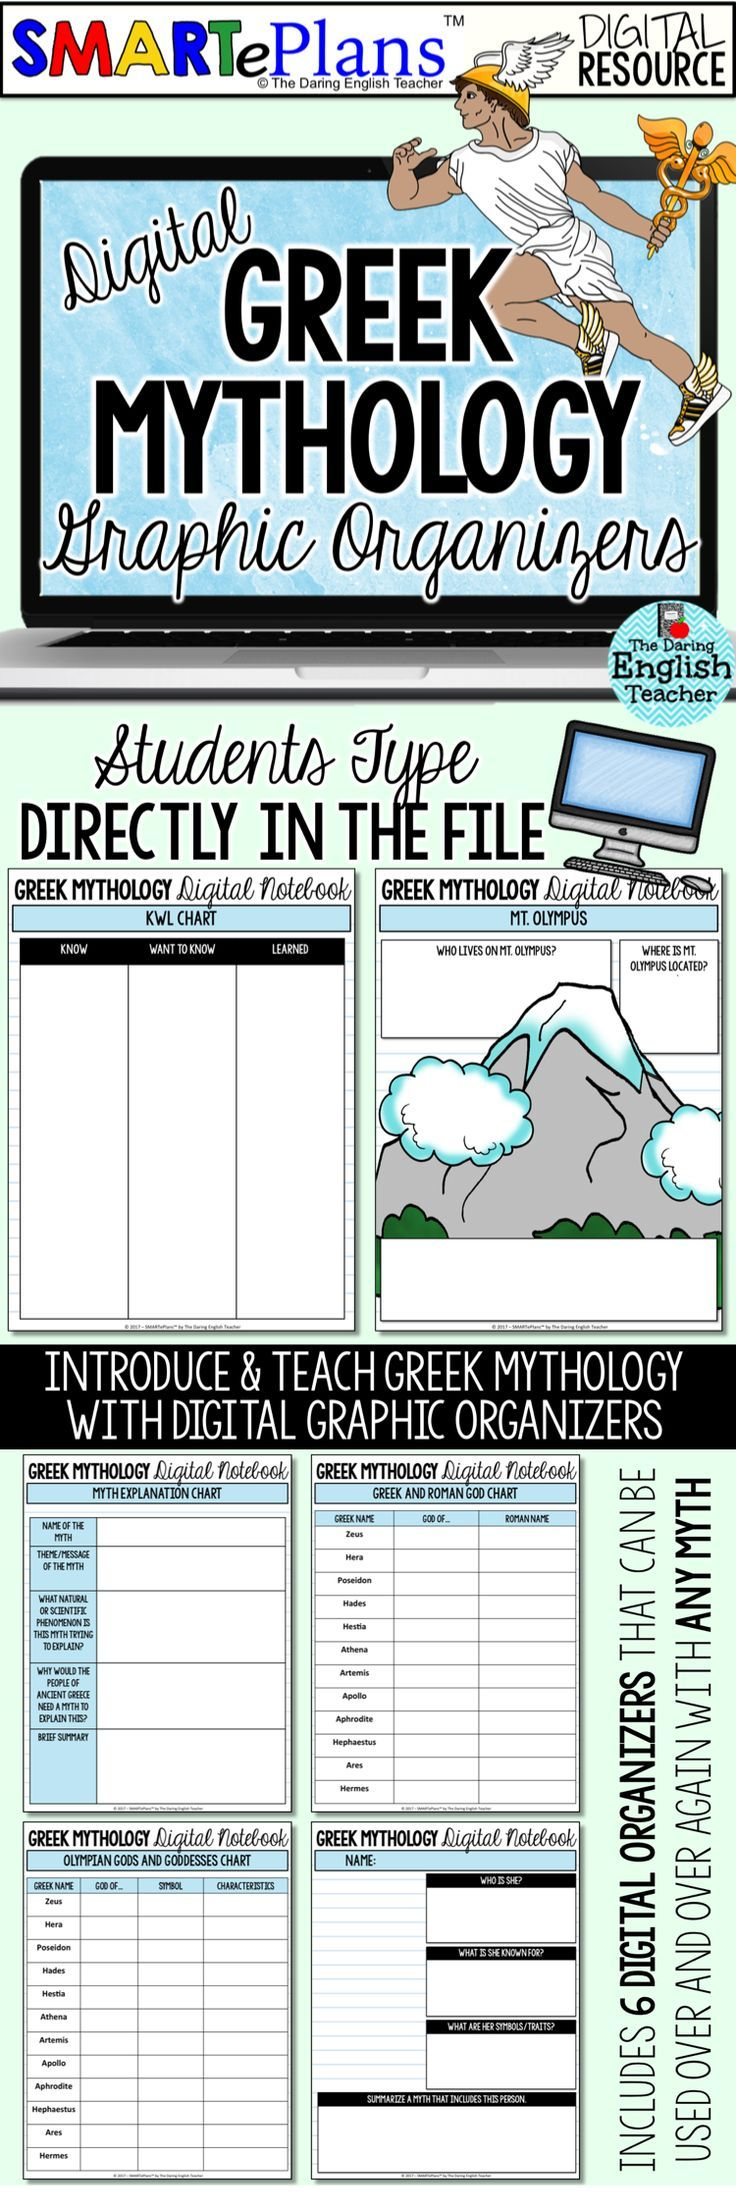 worksheet Greek Mythology Worksheets smarteplans digital greek mythology graphic organizers go with these organizers